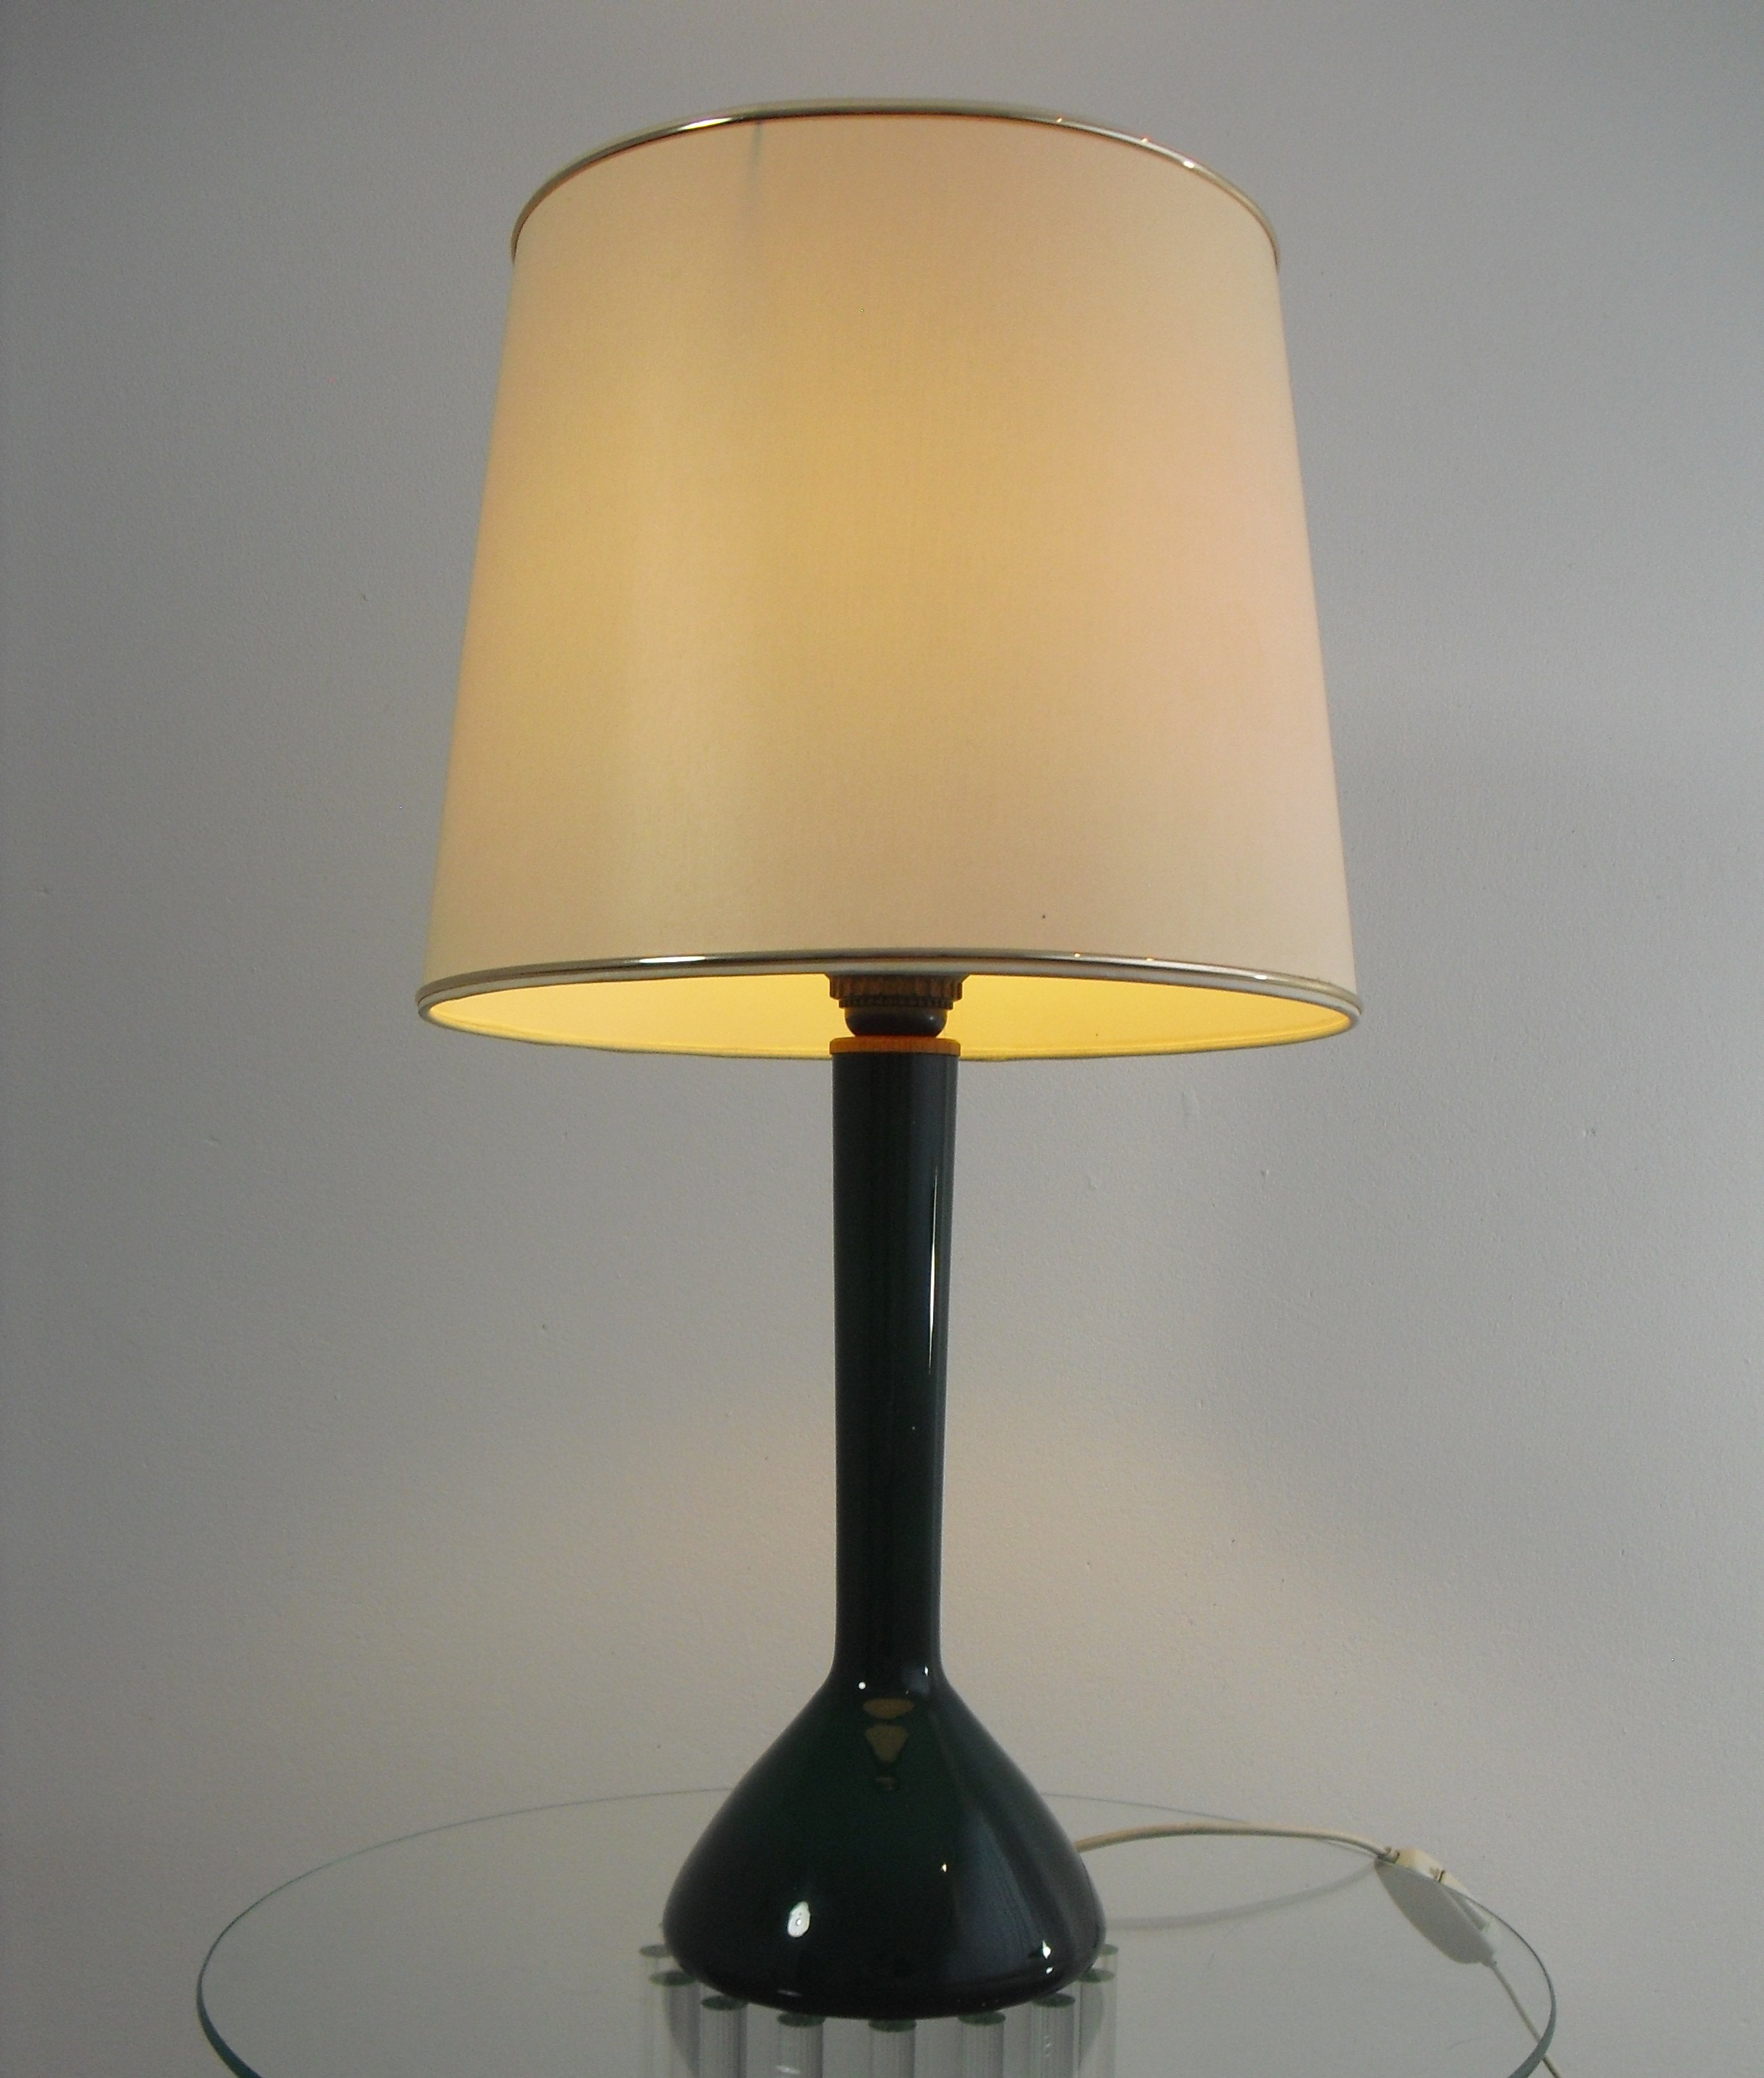 Green glass table lamp by holmegaard 1960s 72363 green glass table lamp by holmegaard 1960 mozeypictures Gallery